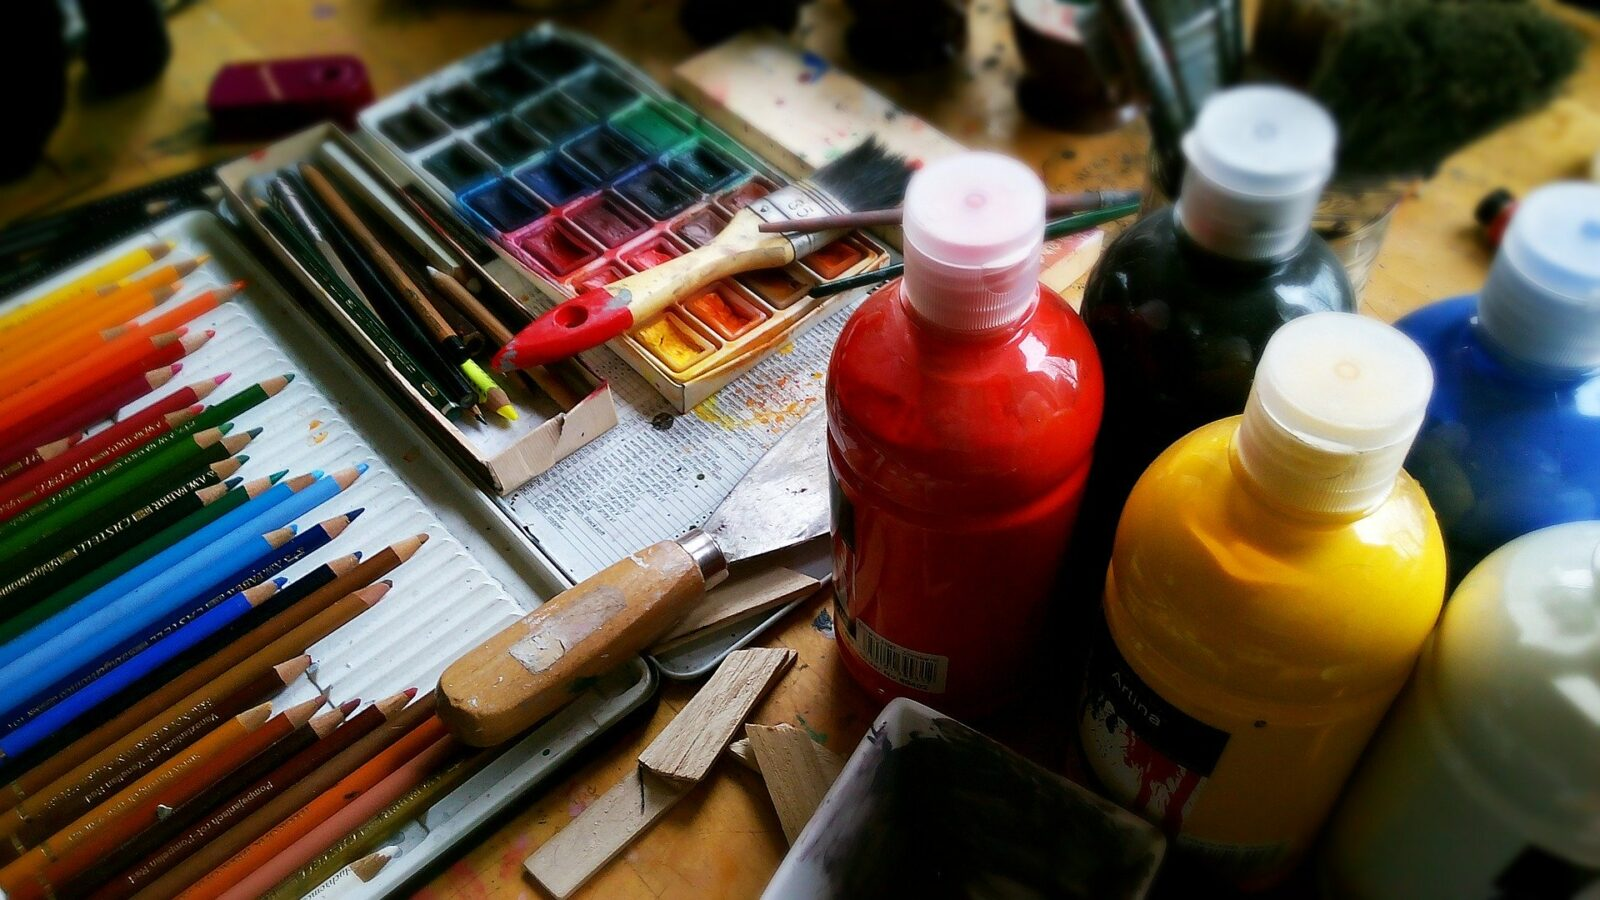 Pencils, paints and brushes